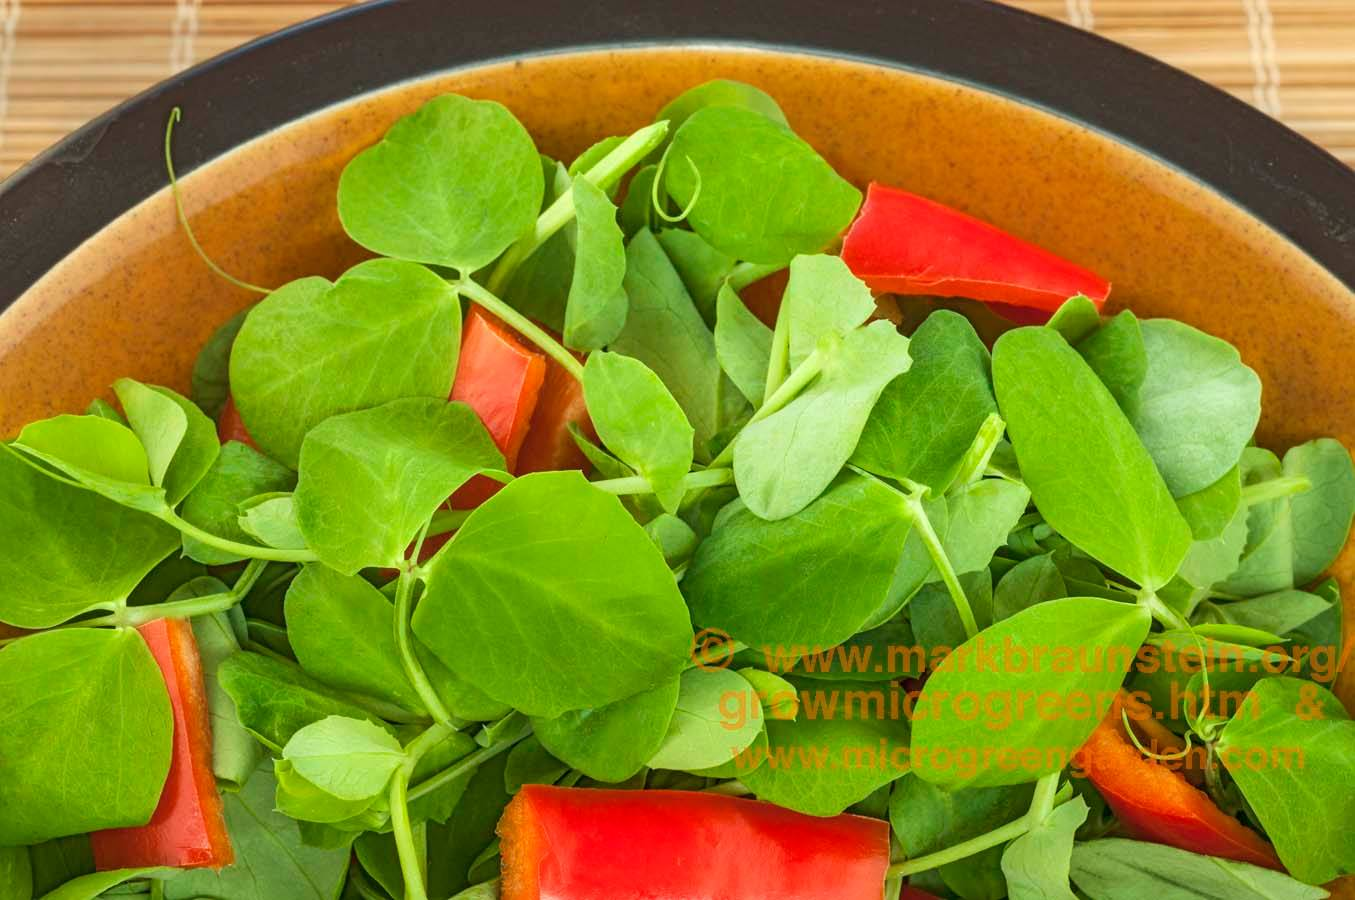 PEA shoots & red peppers - RAW